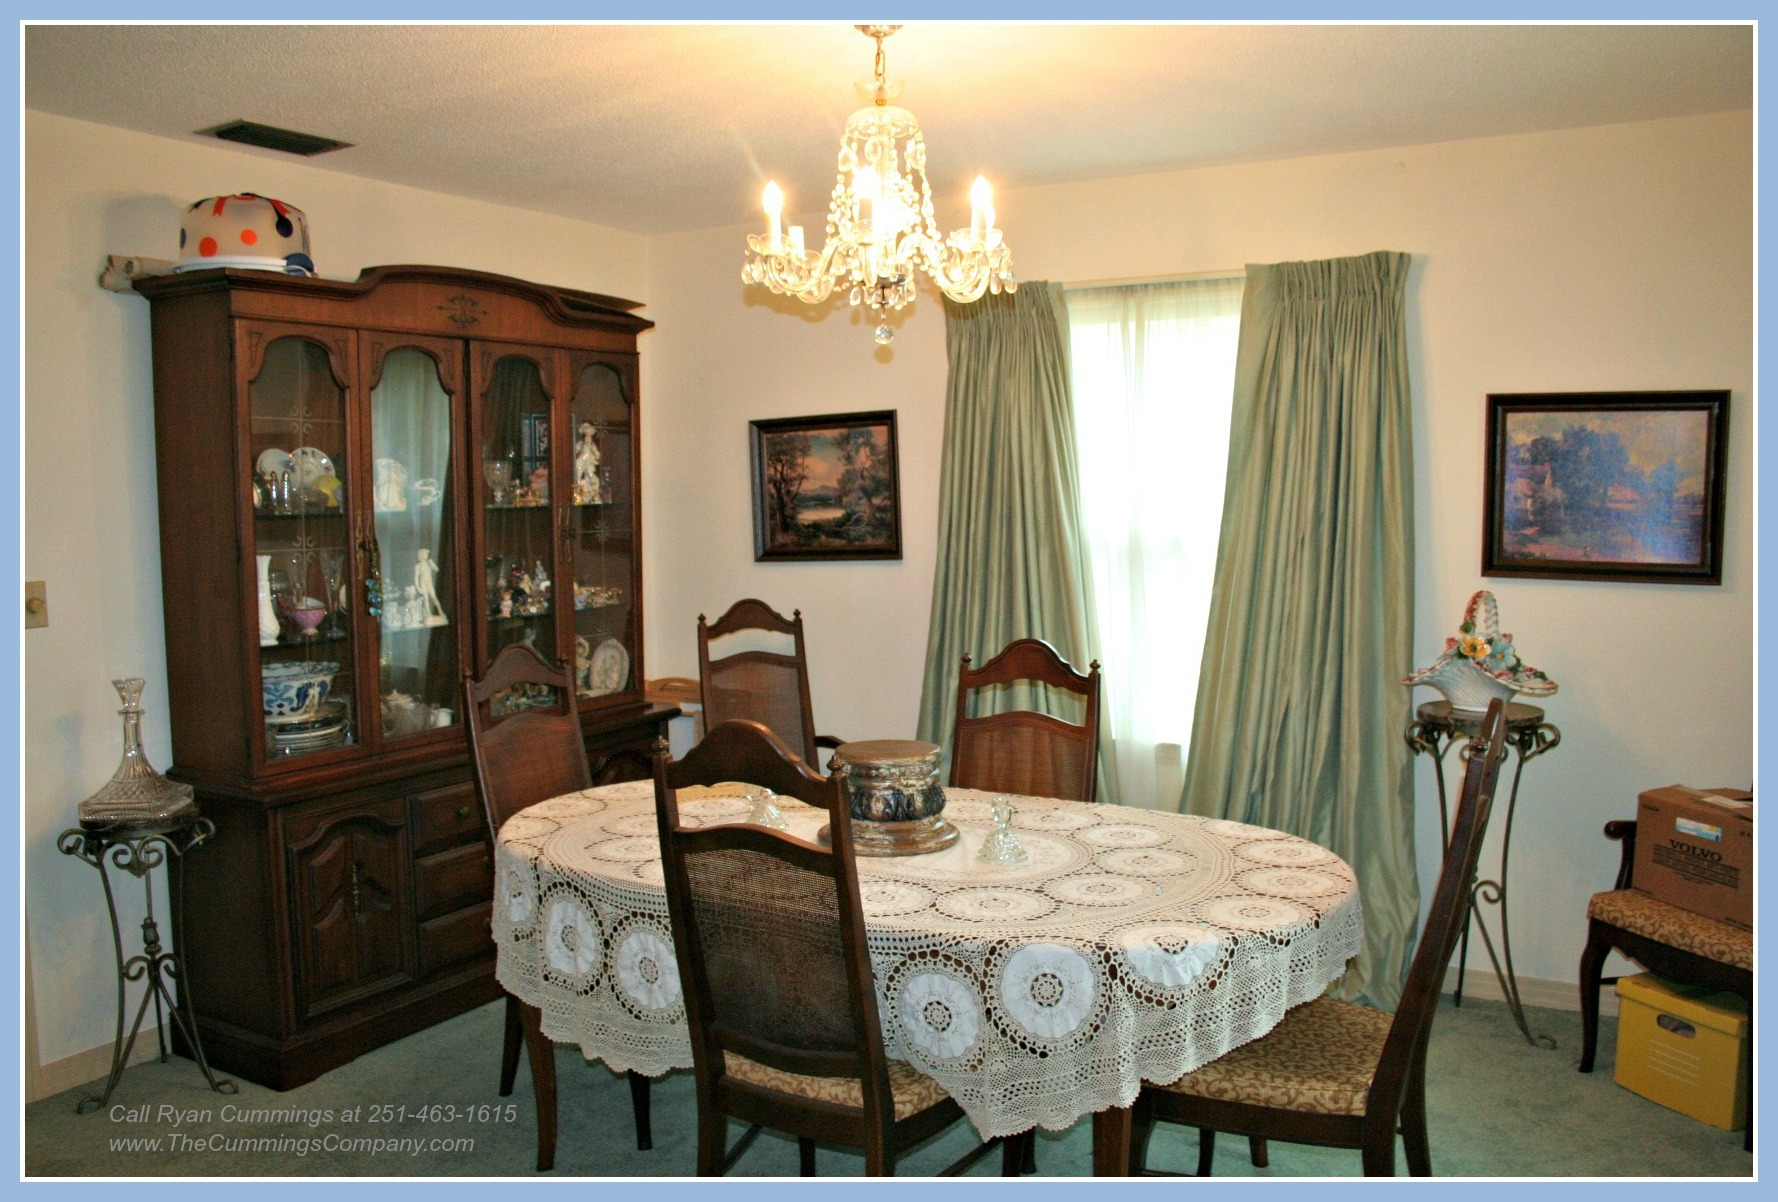 Mobile, AL homes for sale with formal dining